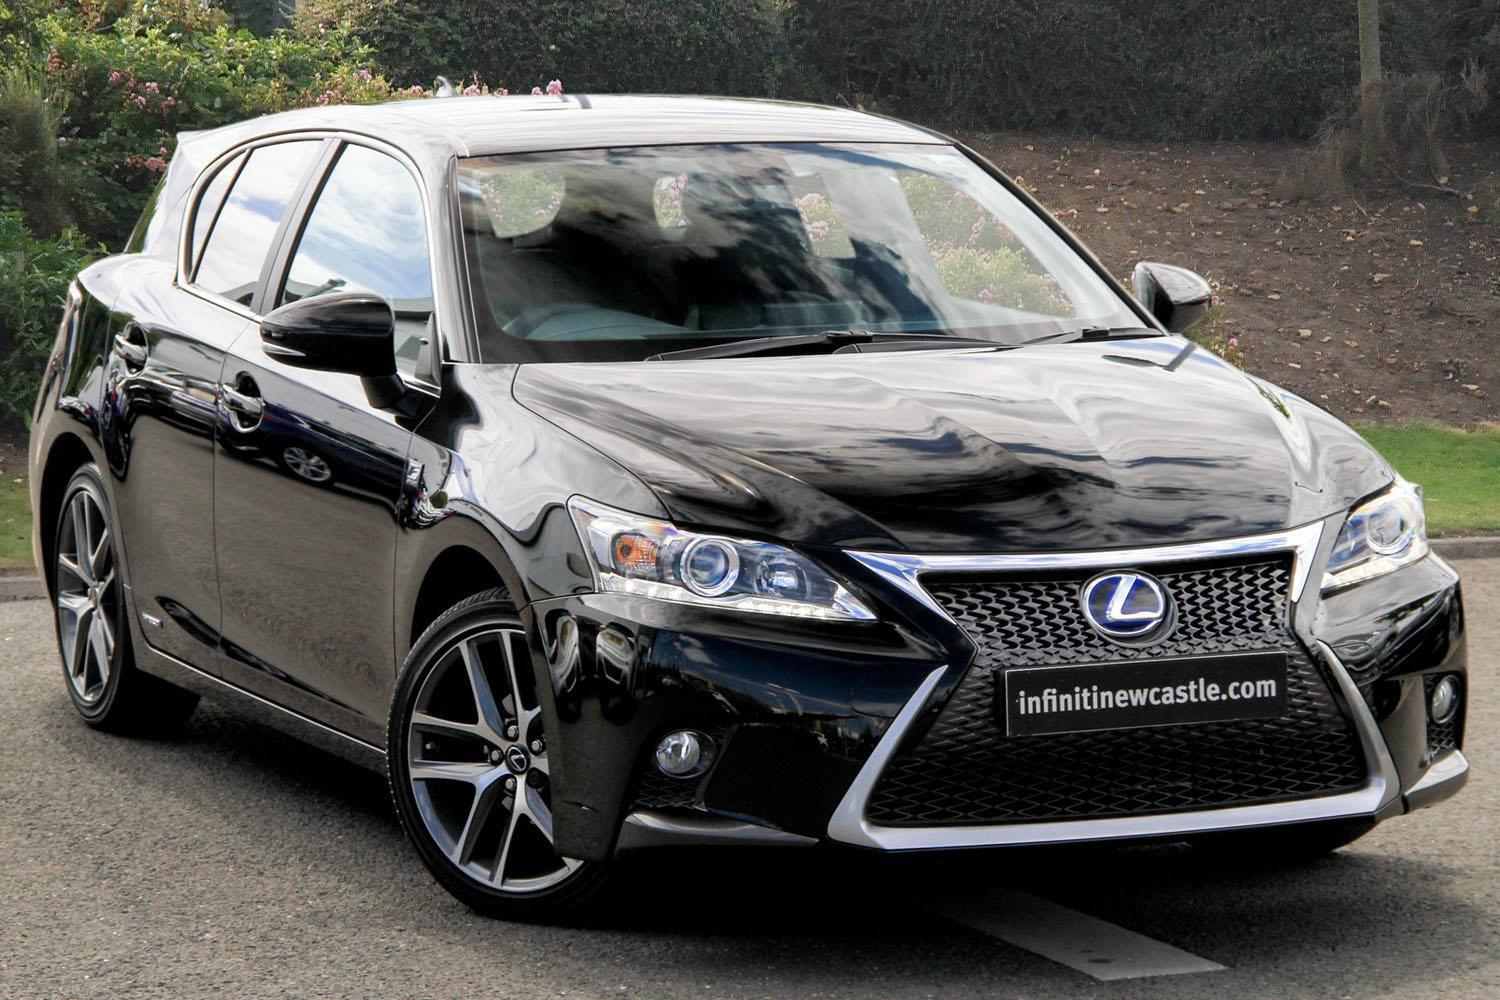 used lexus ct 200h 1 8 f sport 5dr cvt auto hybrid. Black Bedroom Furniture Sets. Home Design Ideas